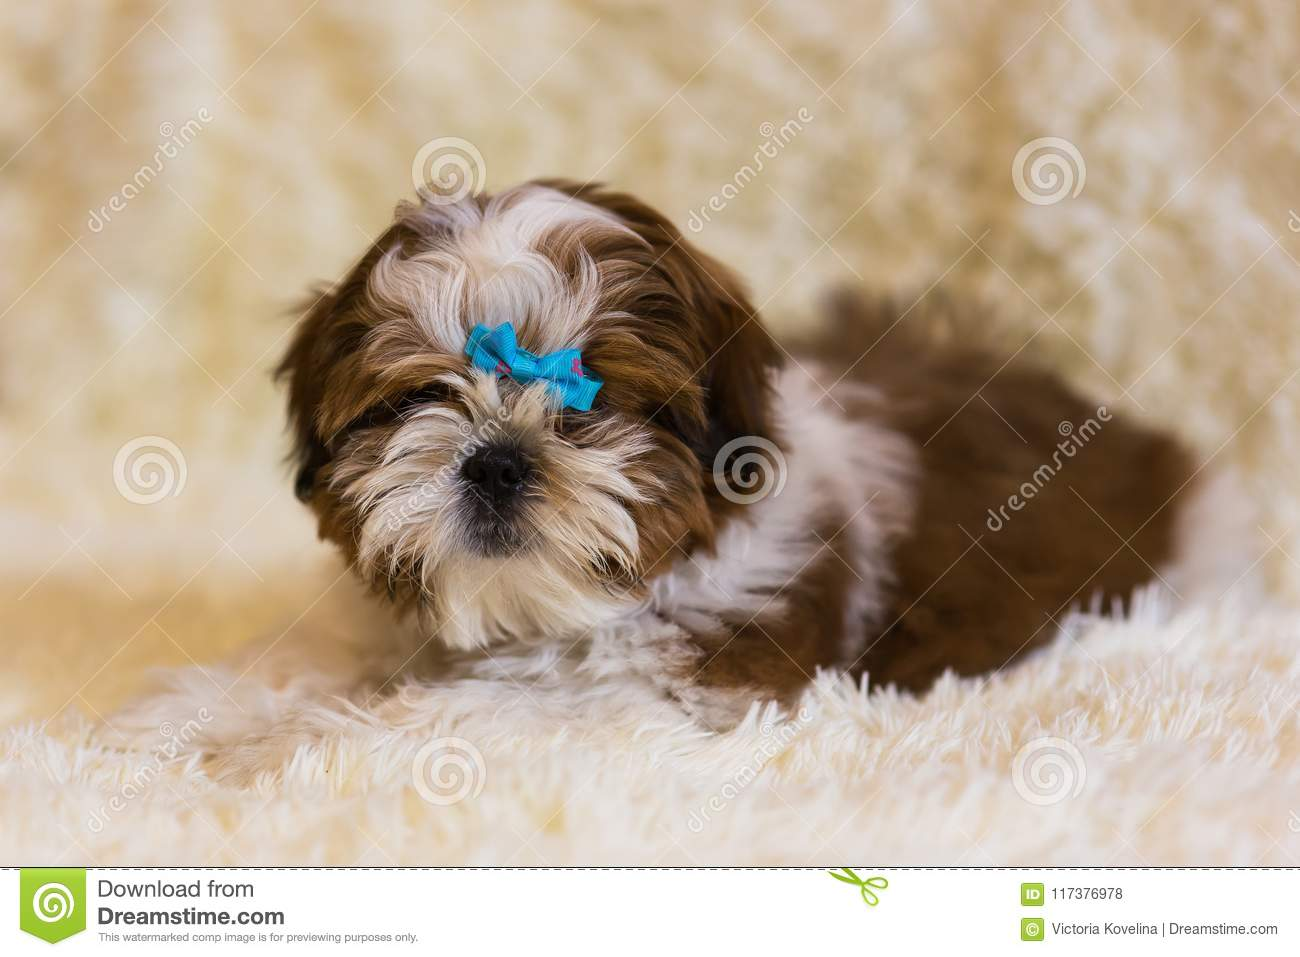 Portrait Of A Cute Little Shih Tzu Puppy Stock Photo Image Of Love Furry 117376978